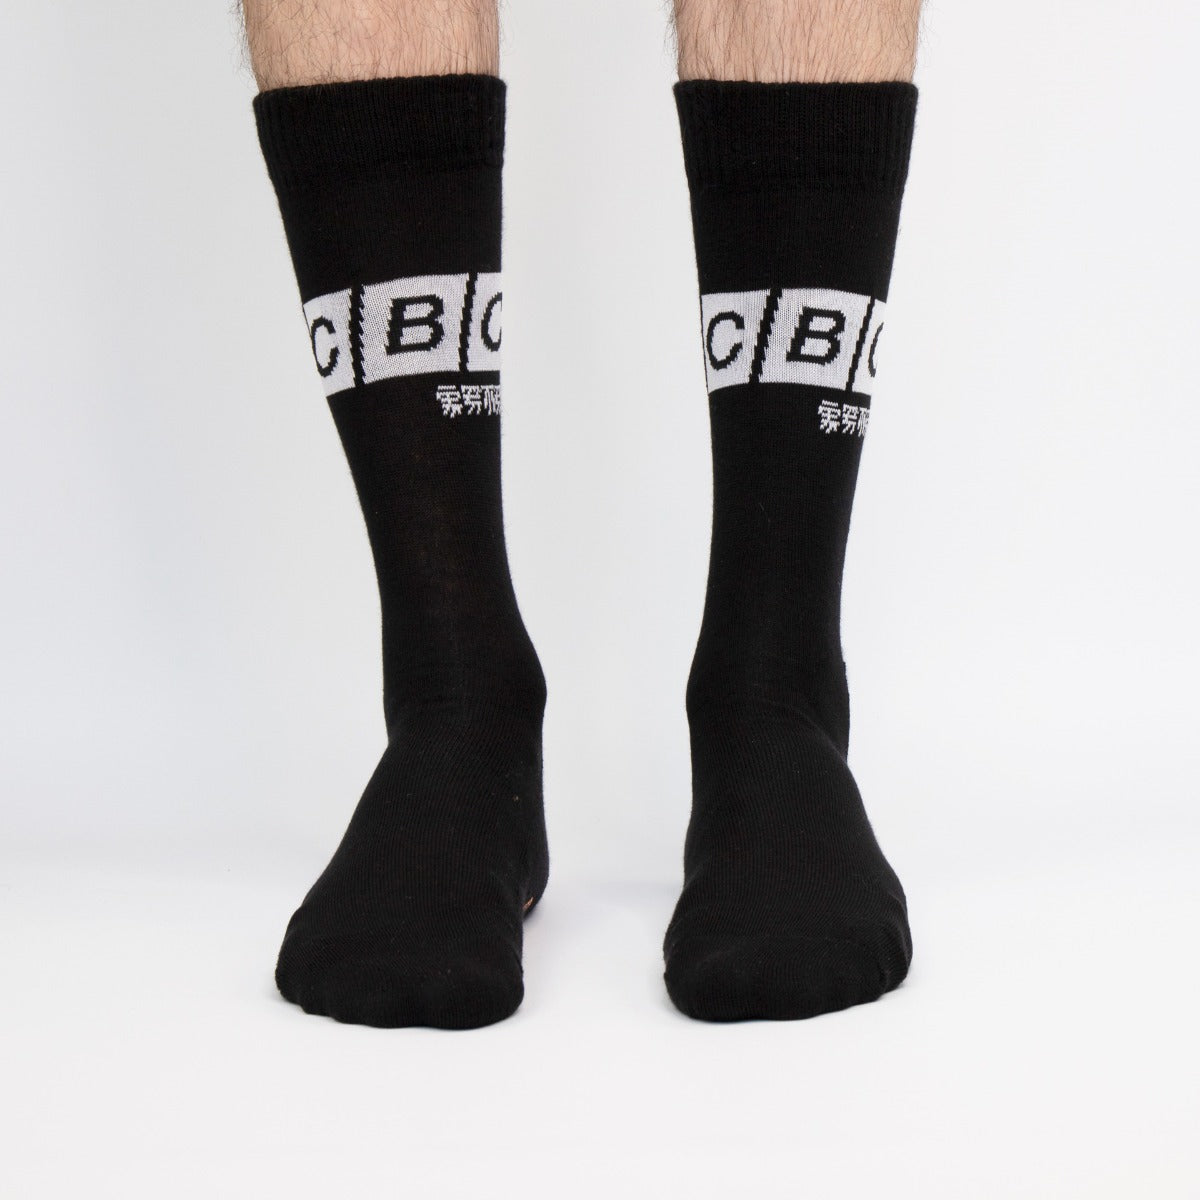 ACBC Socks Logo Black